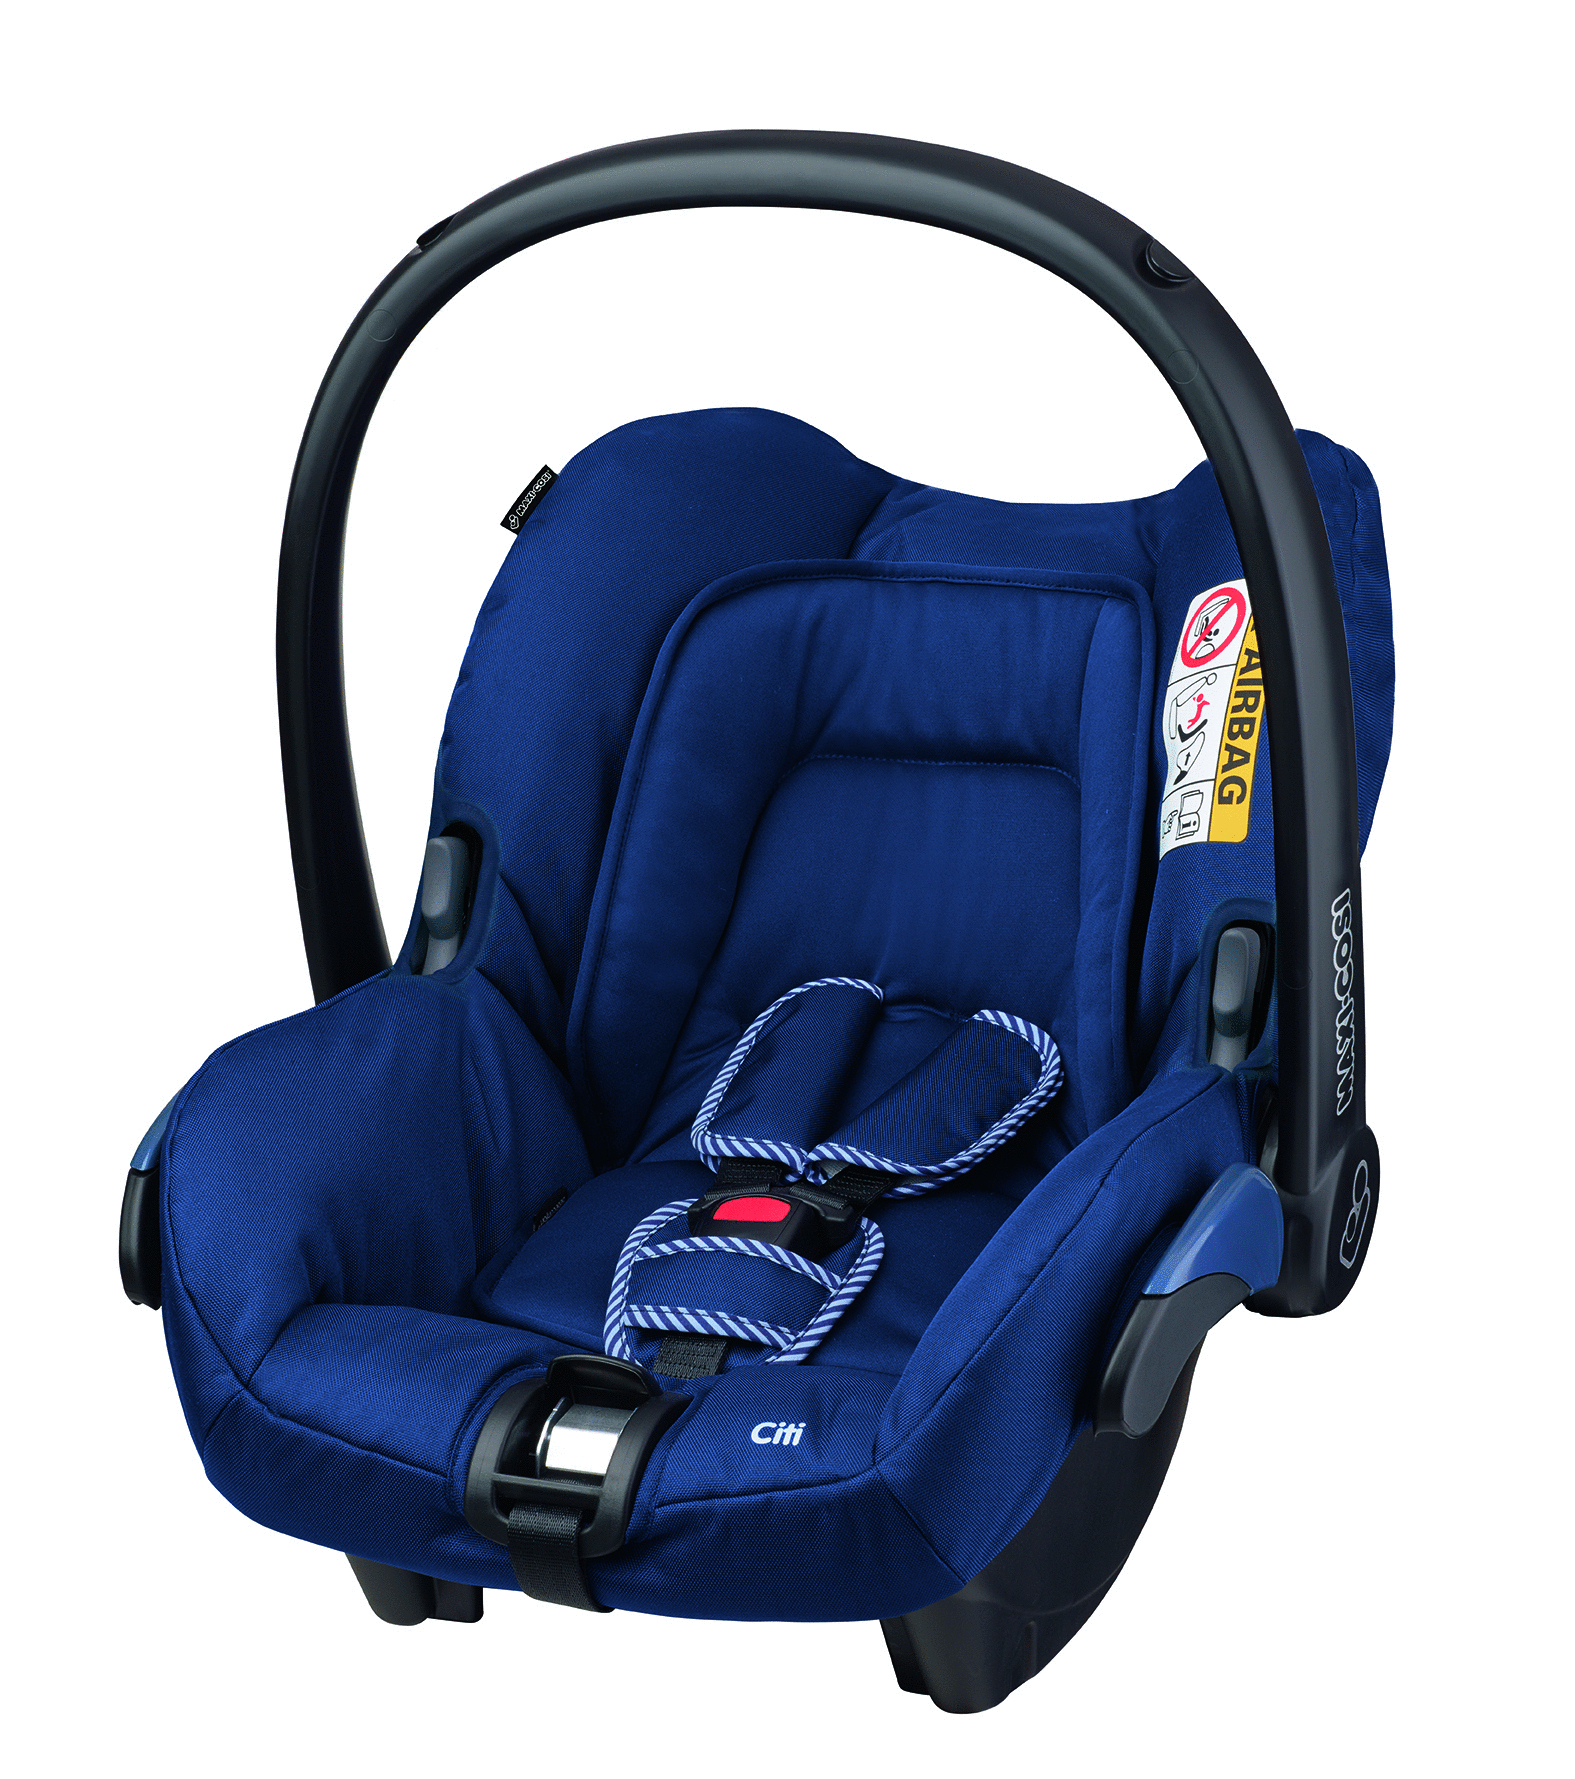 maxi cosi infant carrier citi 2018 river blue buy at kidsroom car seats. Black Bedroom Furniture Sets. Home Design Ideas